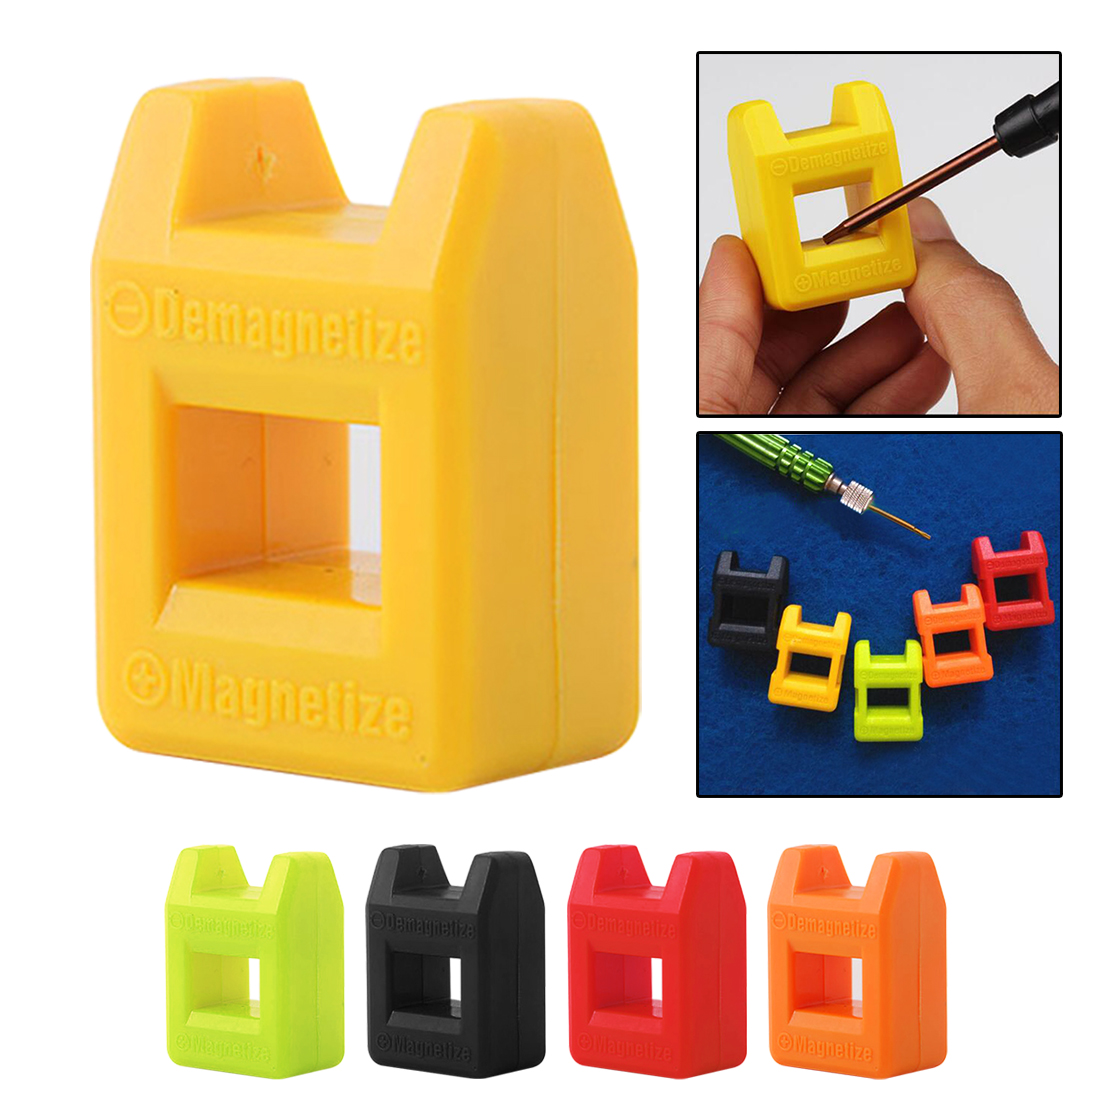 Magnetizer Demagnetizer 2 In 1 Tool Screwdriver Magnetic High Quality Colour Send Random Mini - Fast